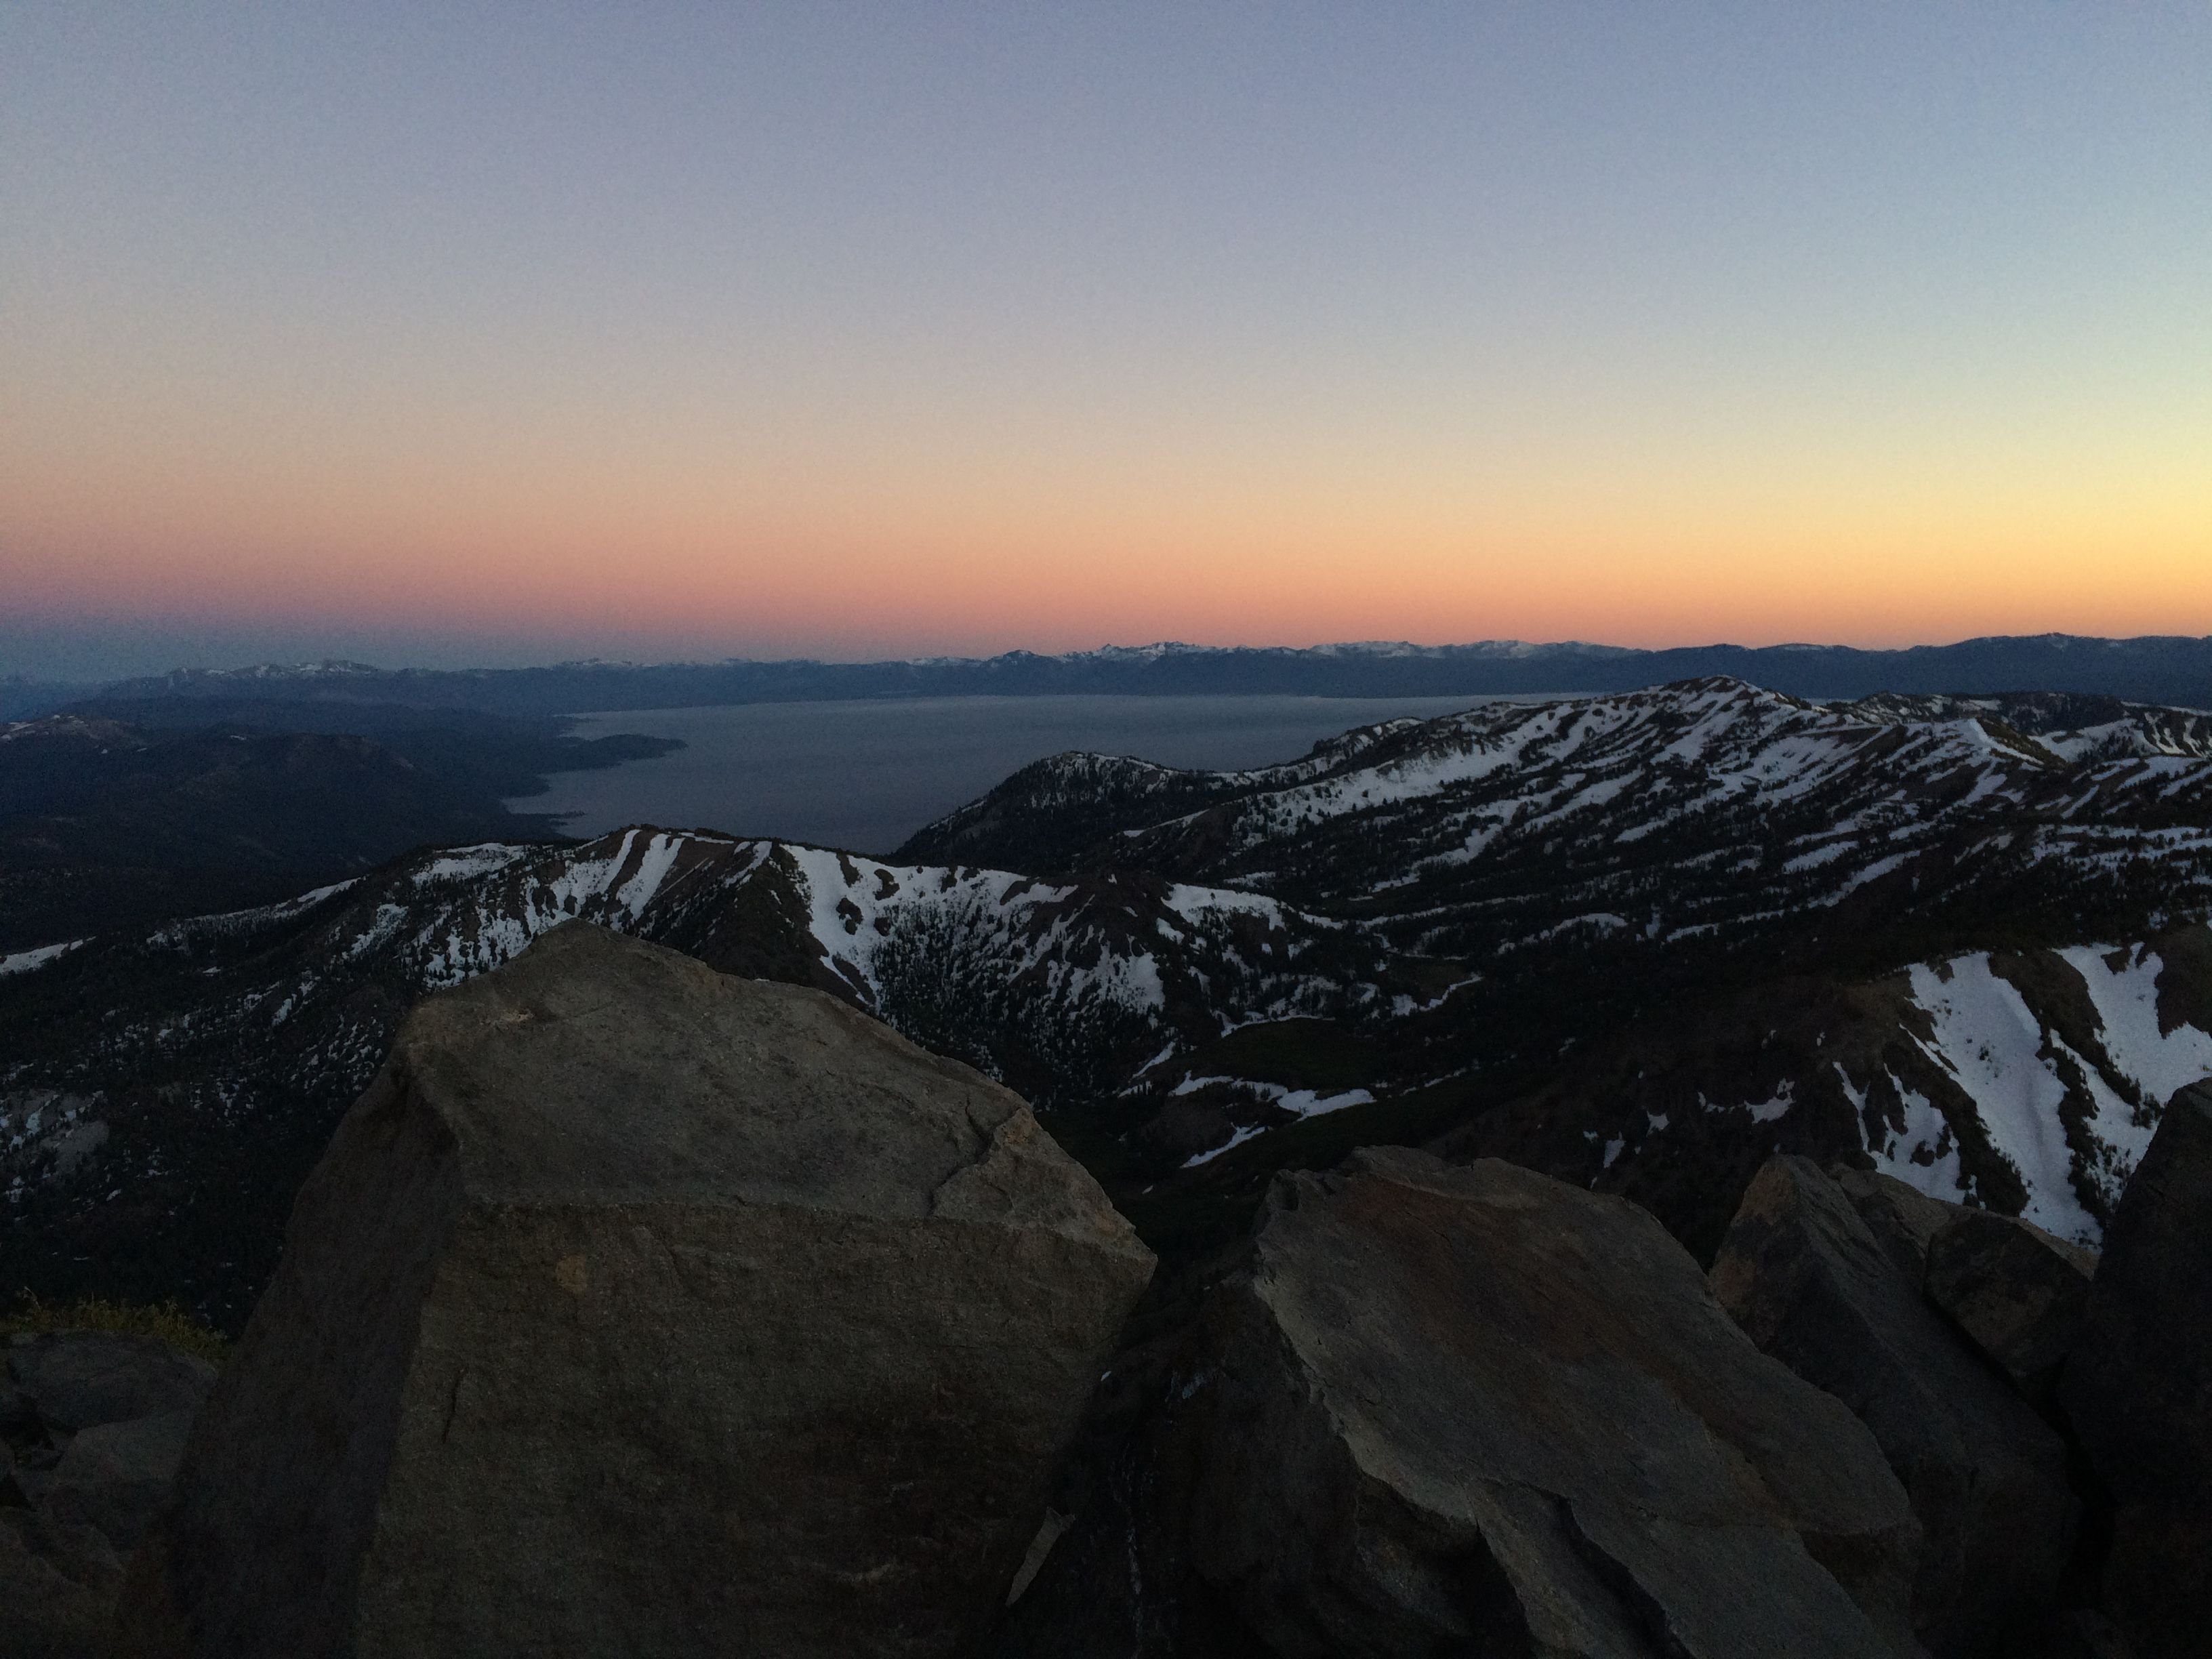 Mount Rose, Mount Rose Summit trailhead, Lake Tahoe, Five-Star Trails: Lake Tahoe, Jordan Summers